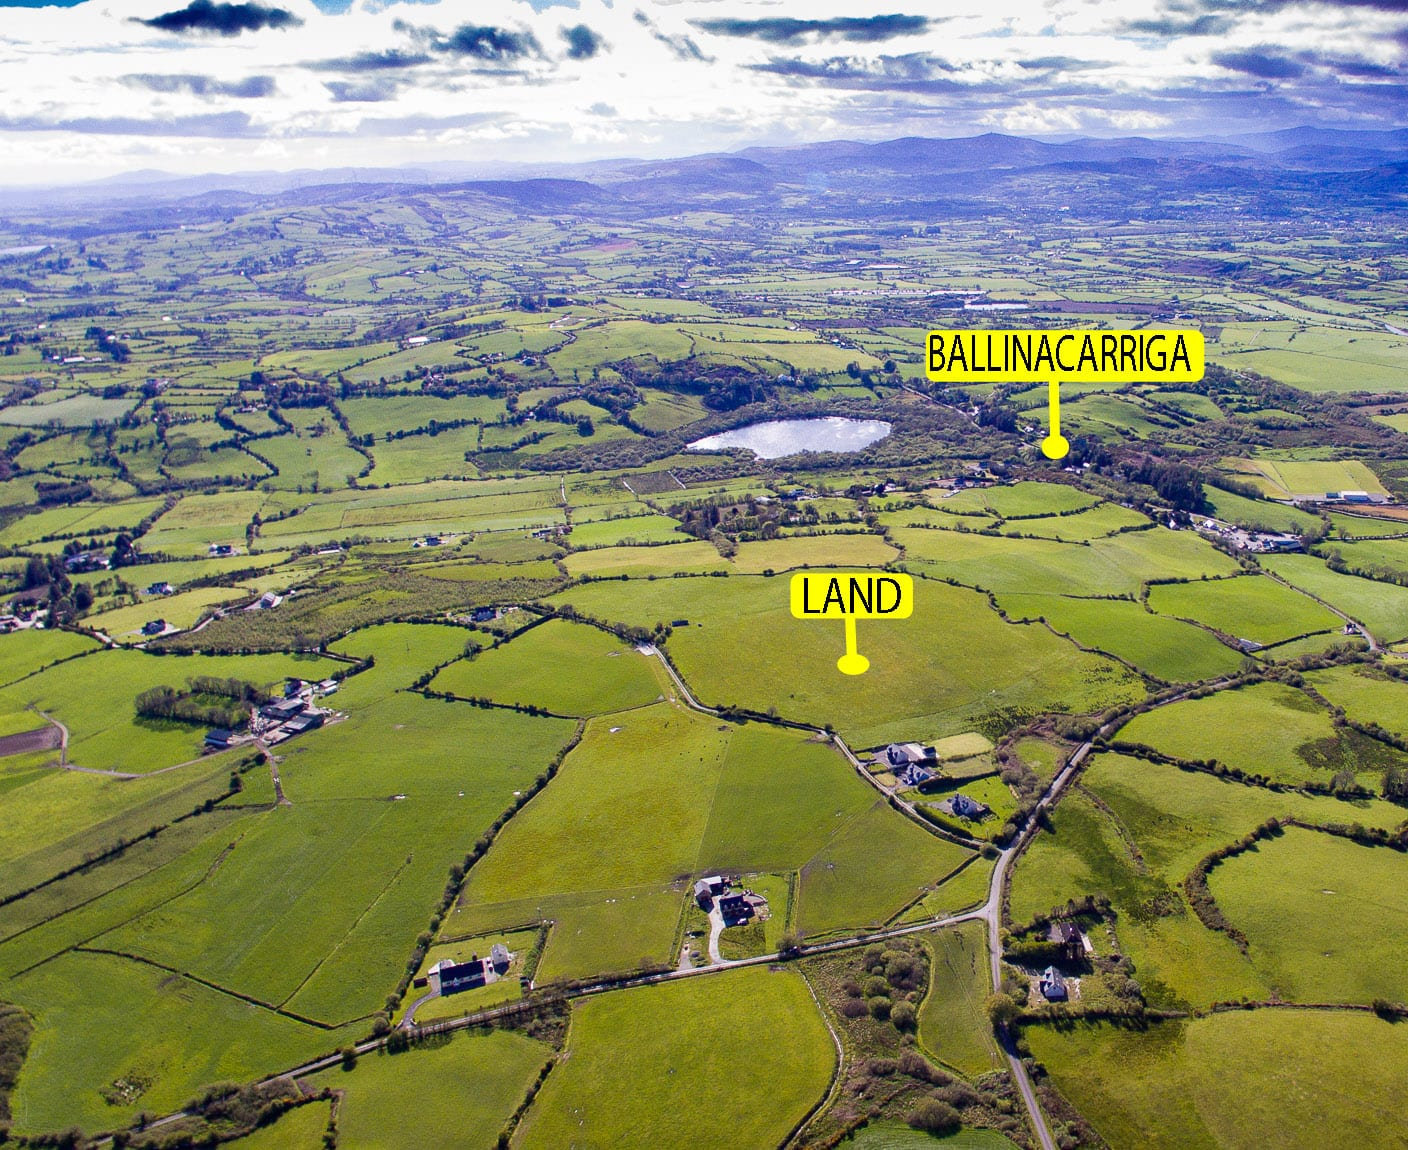 DJI_0007 Location Marked LAND AND BALLINACARRIGA CROPPED